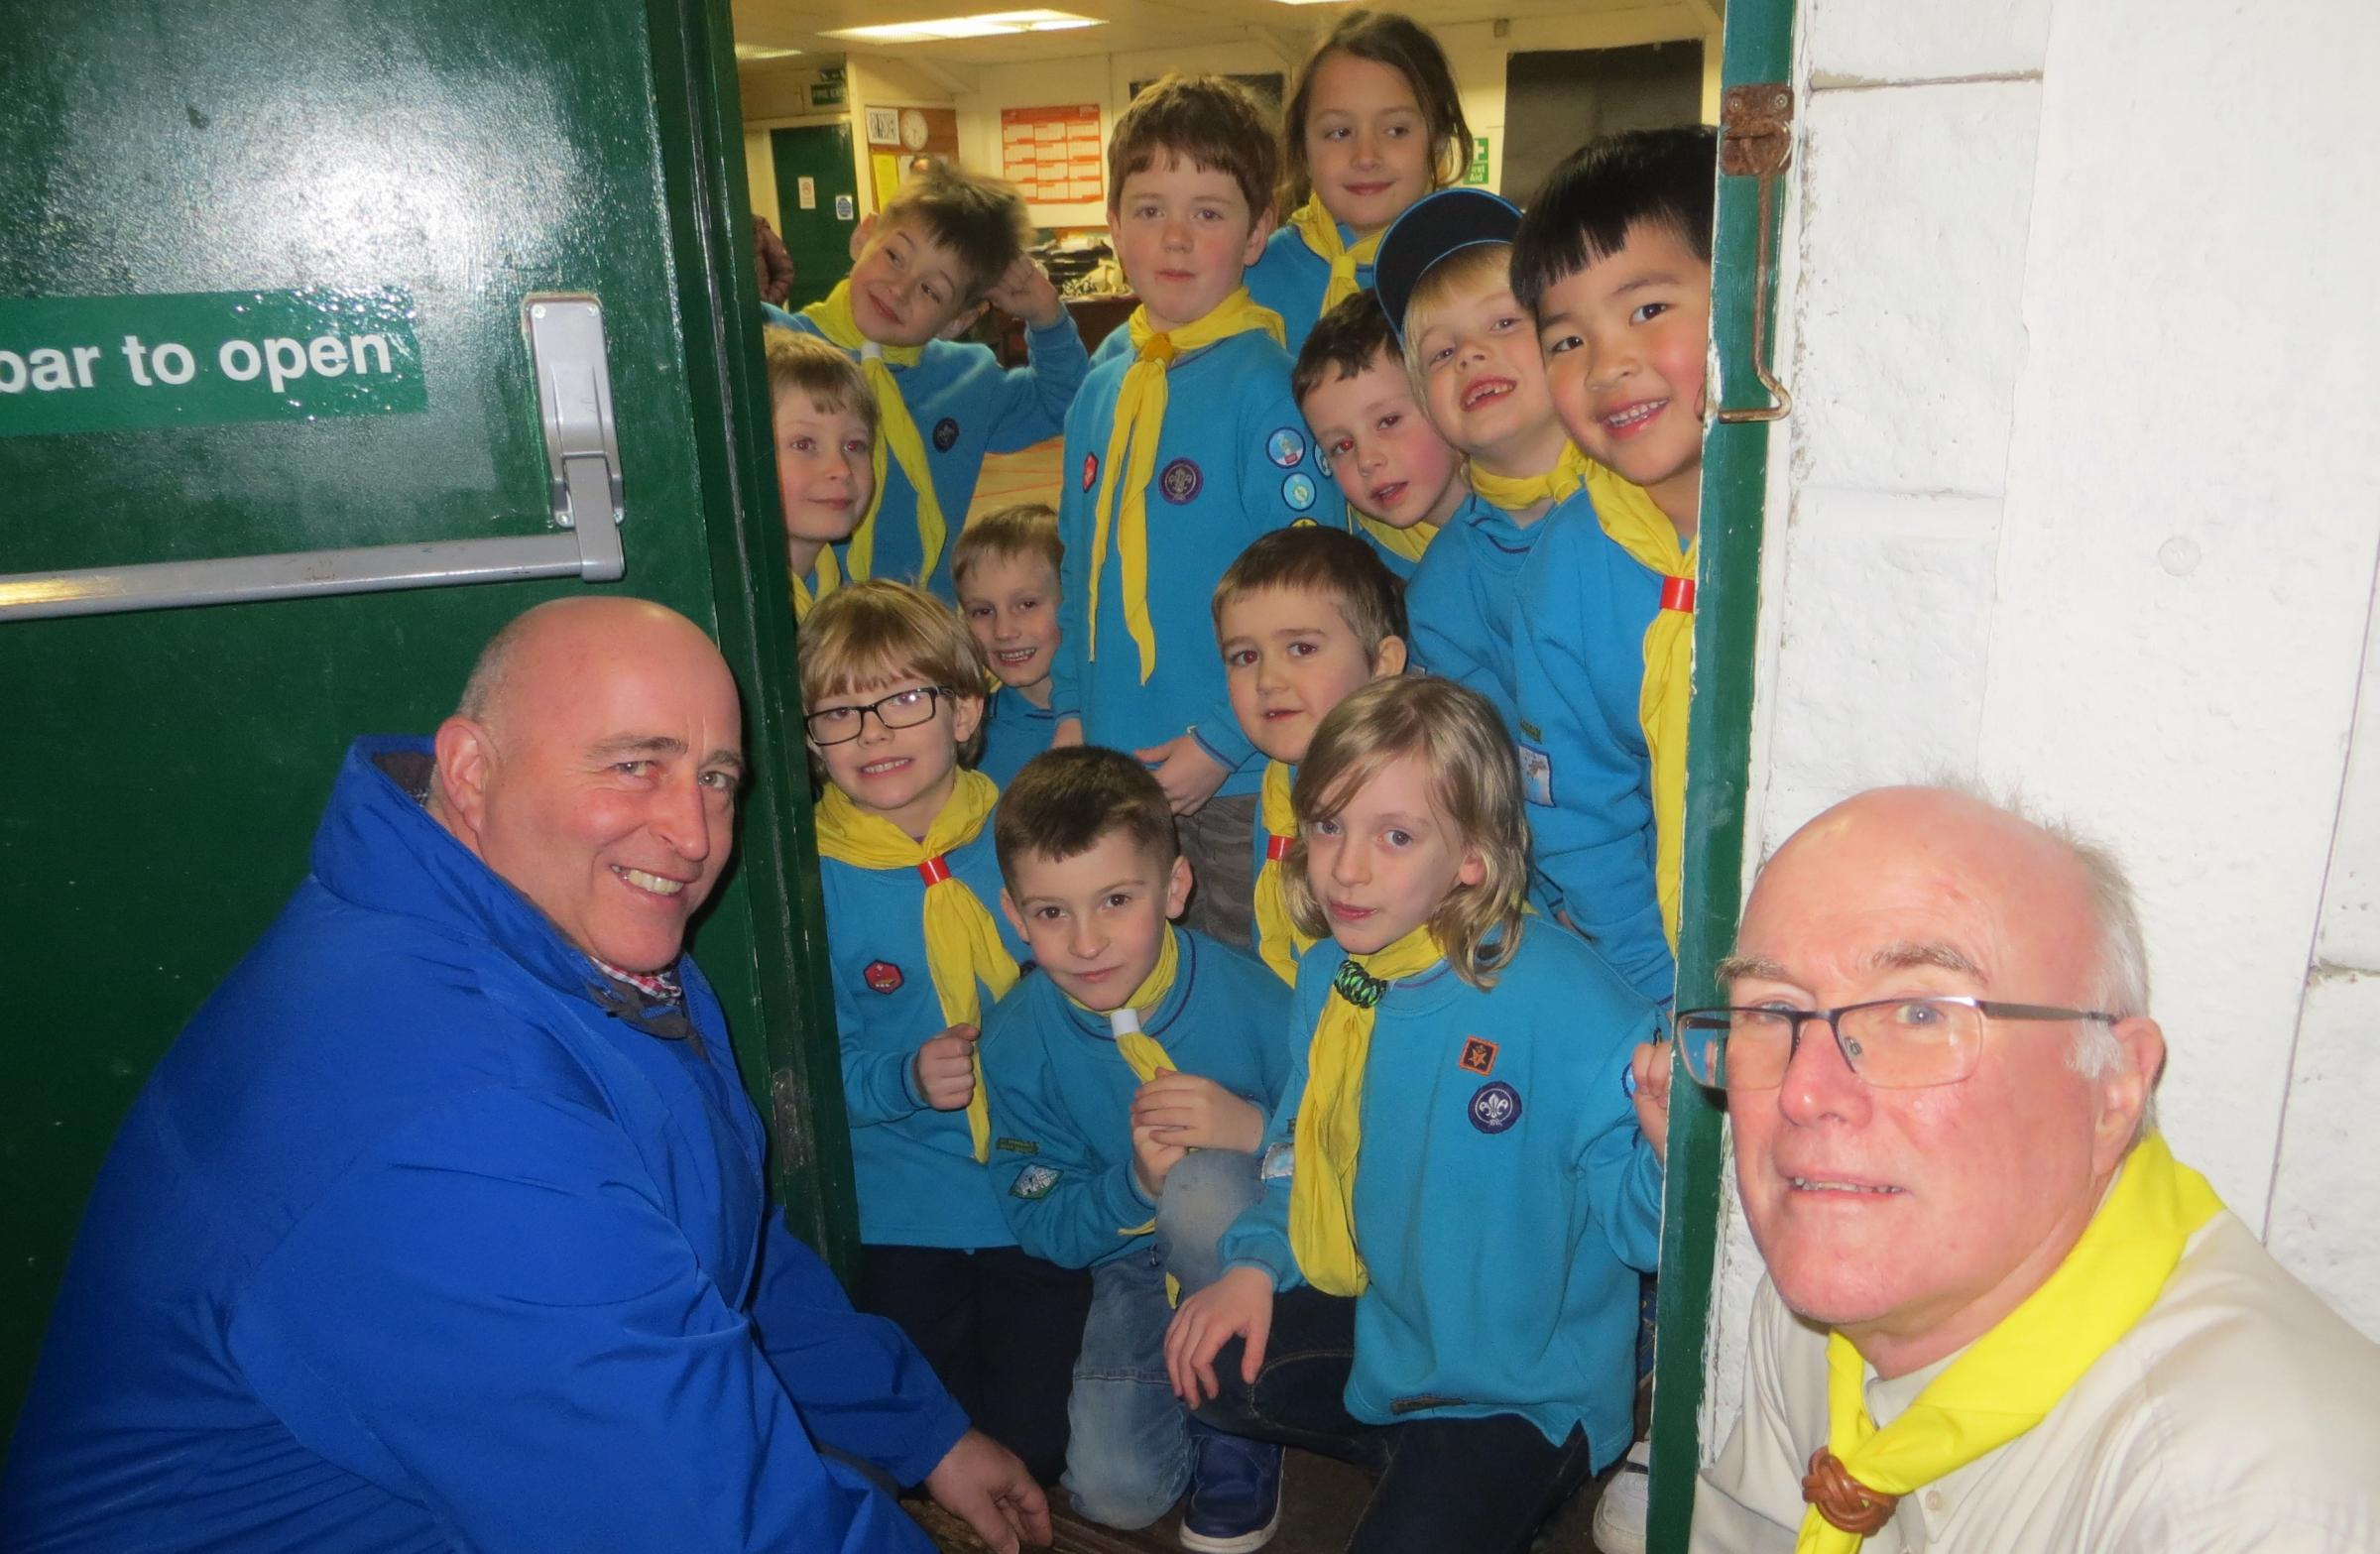 Scouting group from Thornbury appeal to shoppers to help repairs fundraising campaign